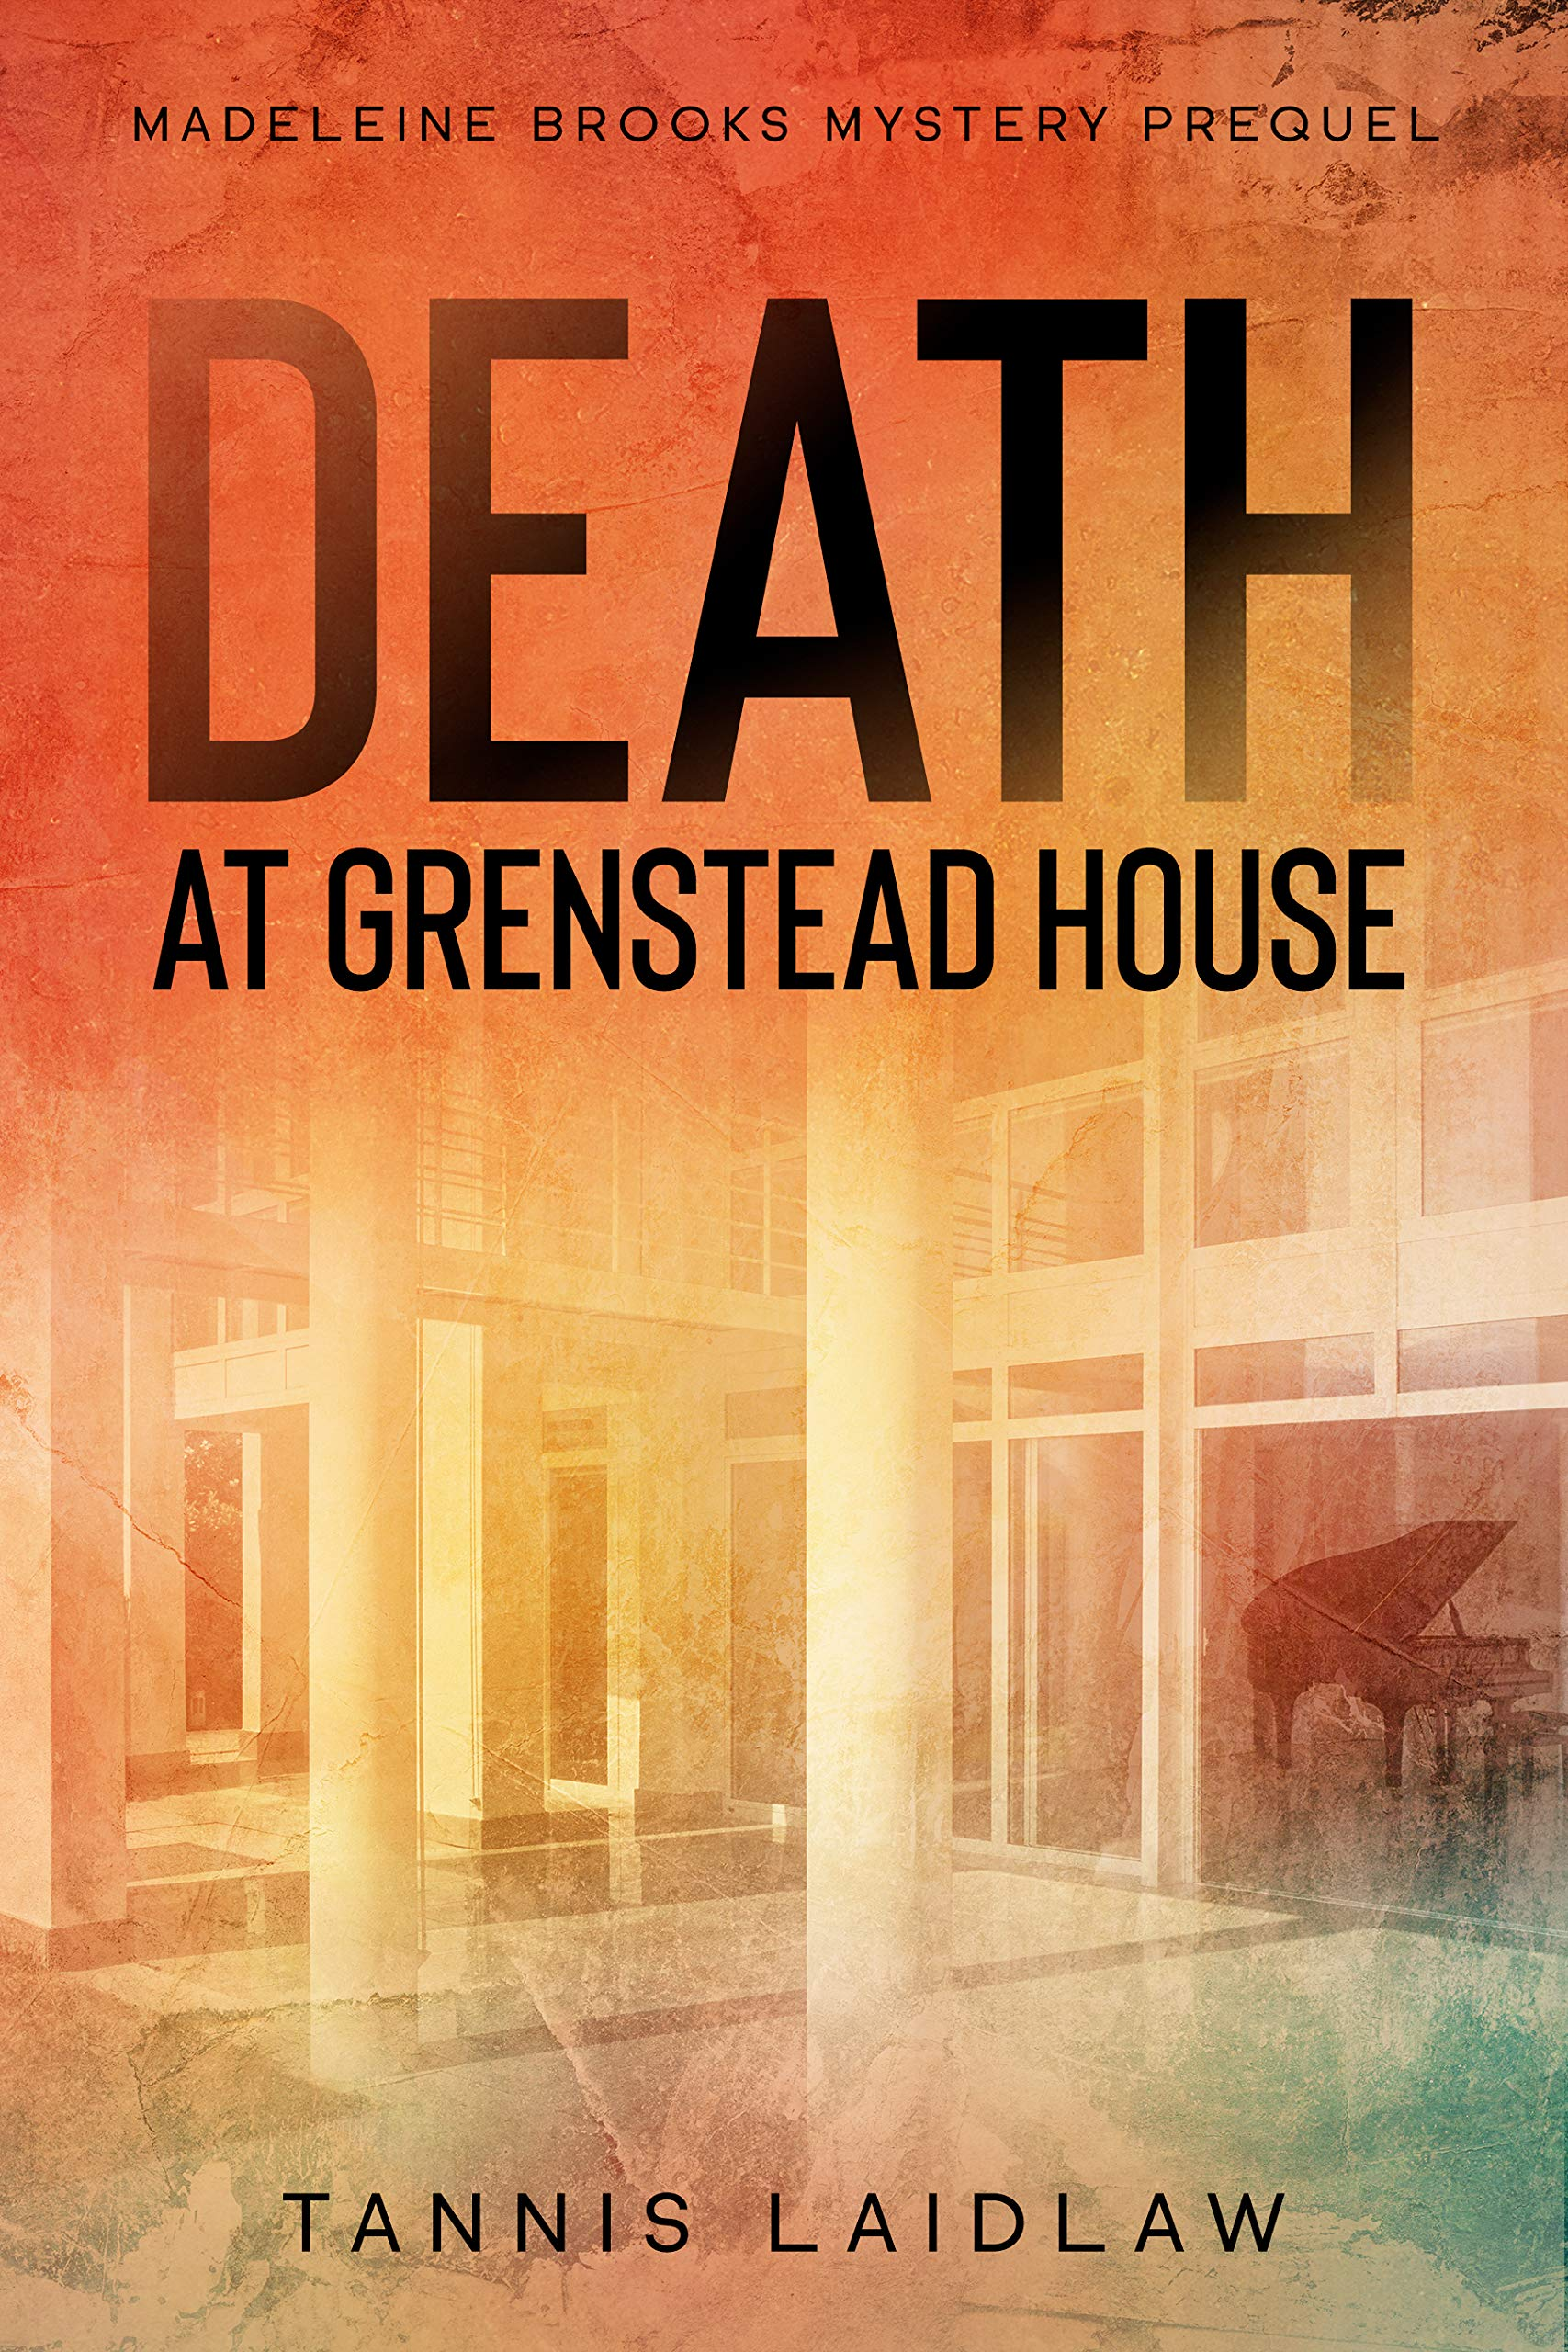 Death at Grenstead House: A prequel murder mystery perfect for lovers of British crime fiction